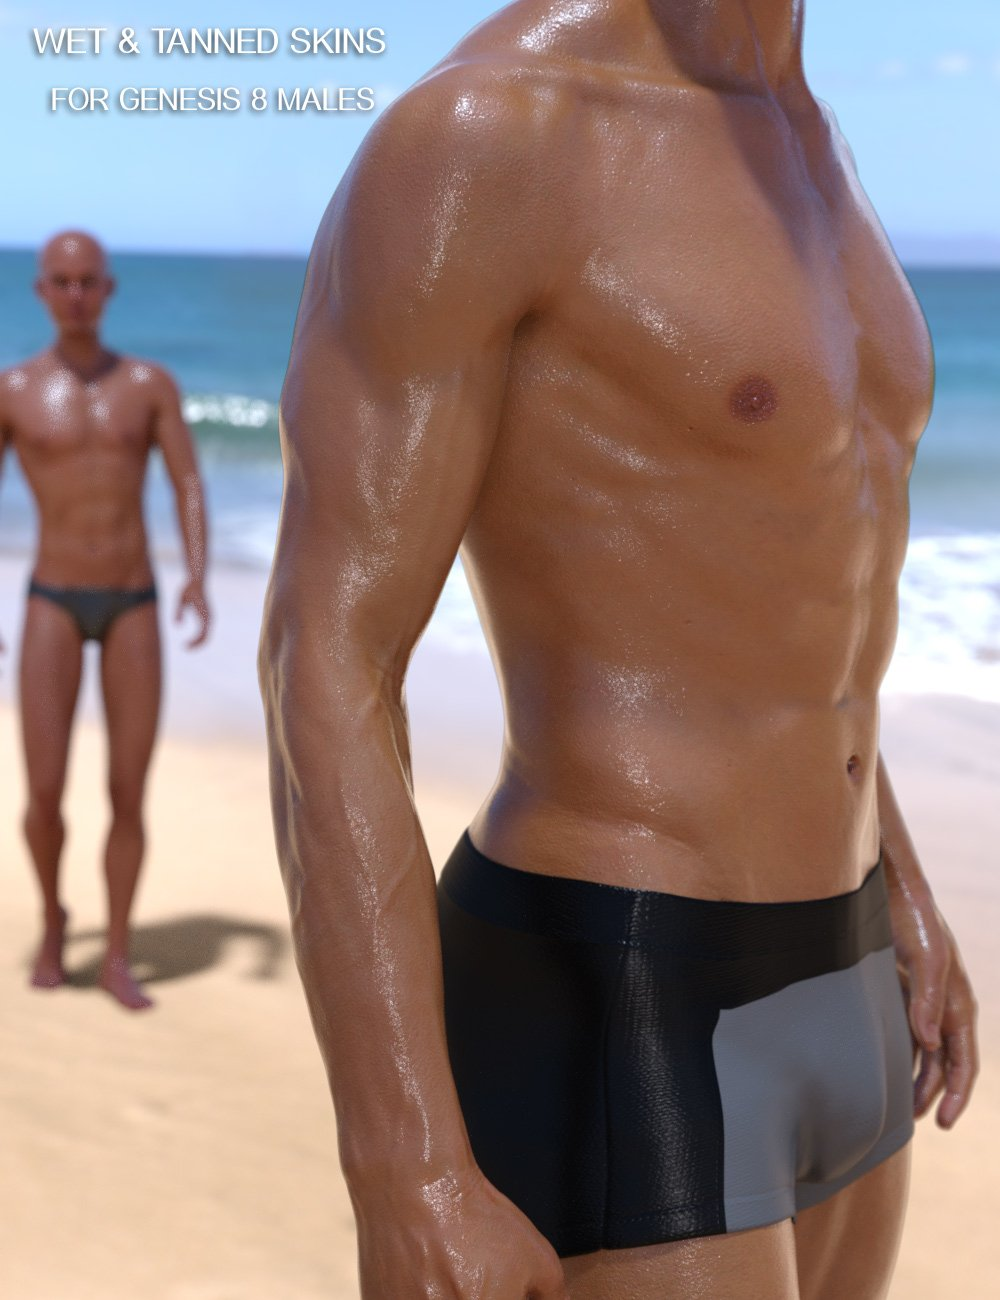 Wet And Tanned Skins For Genesis 8 Male(s) by: V3Digitimes, 3D Models by Daz 3D